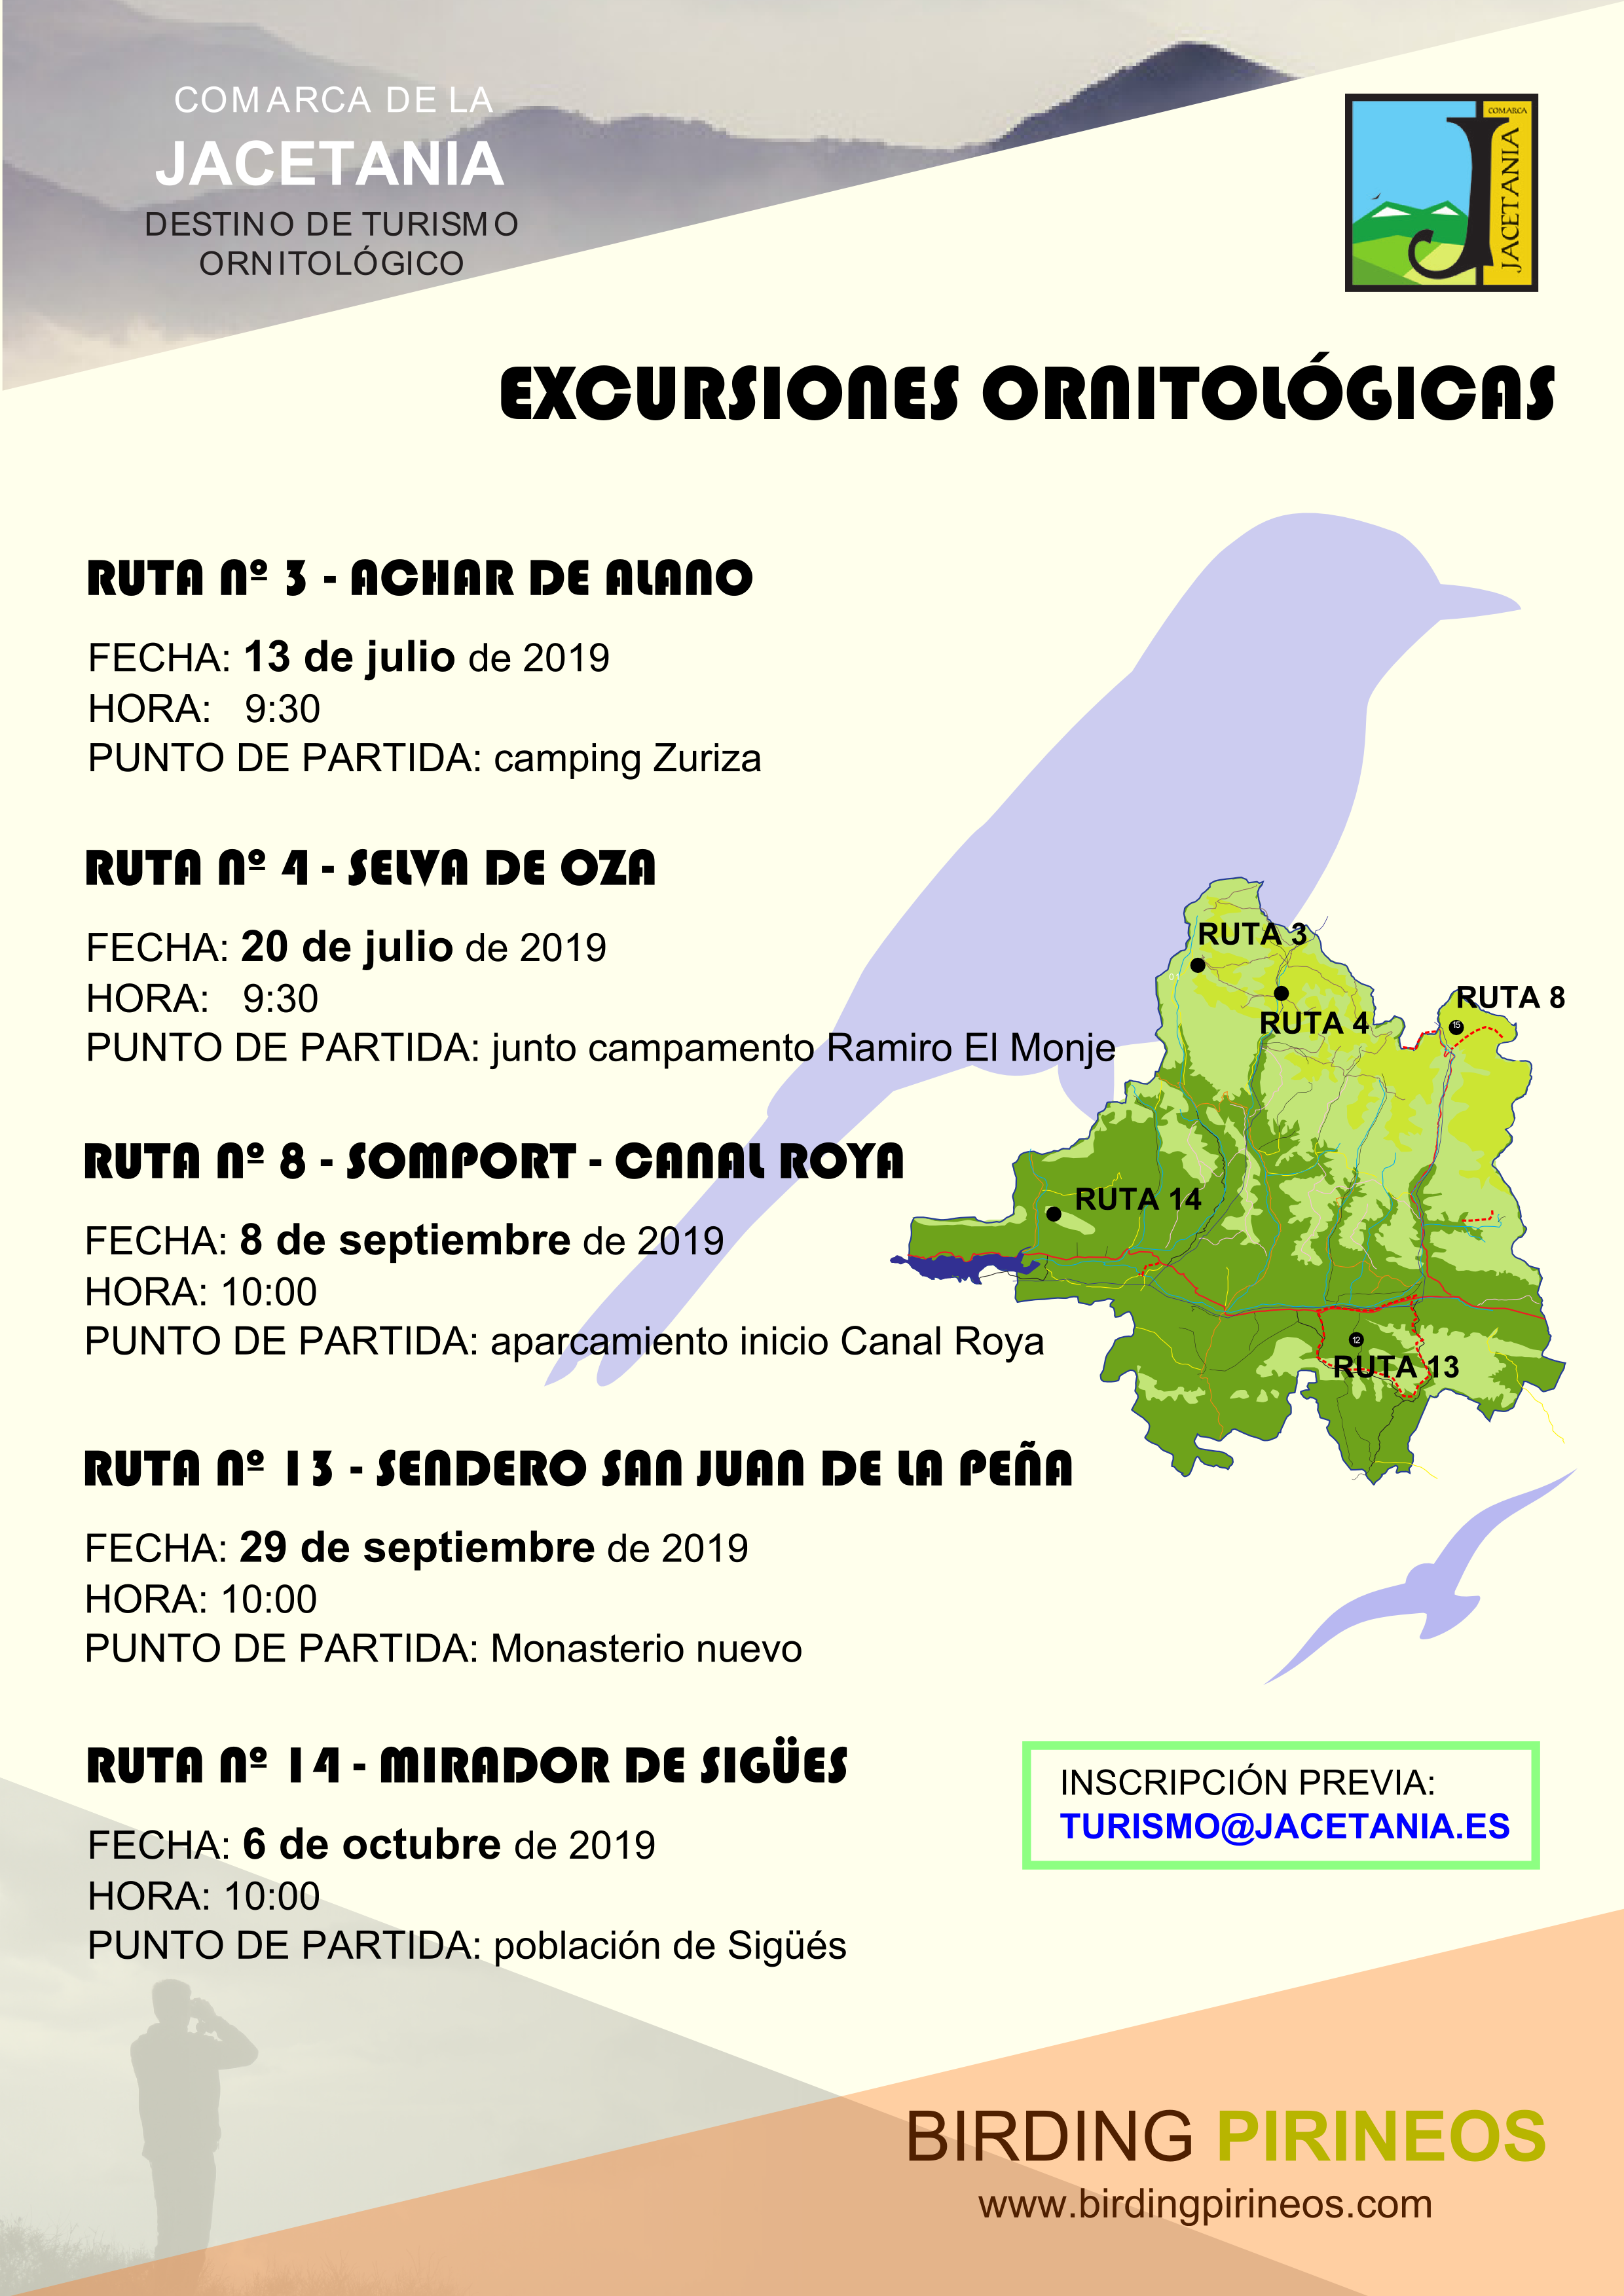 Excursiones Ornitológicas